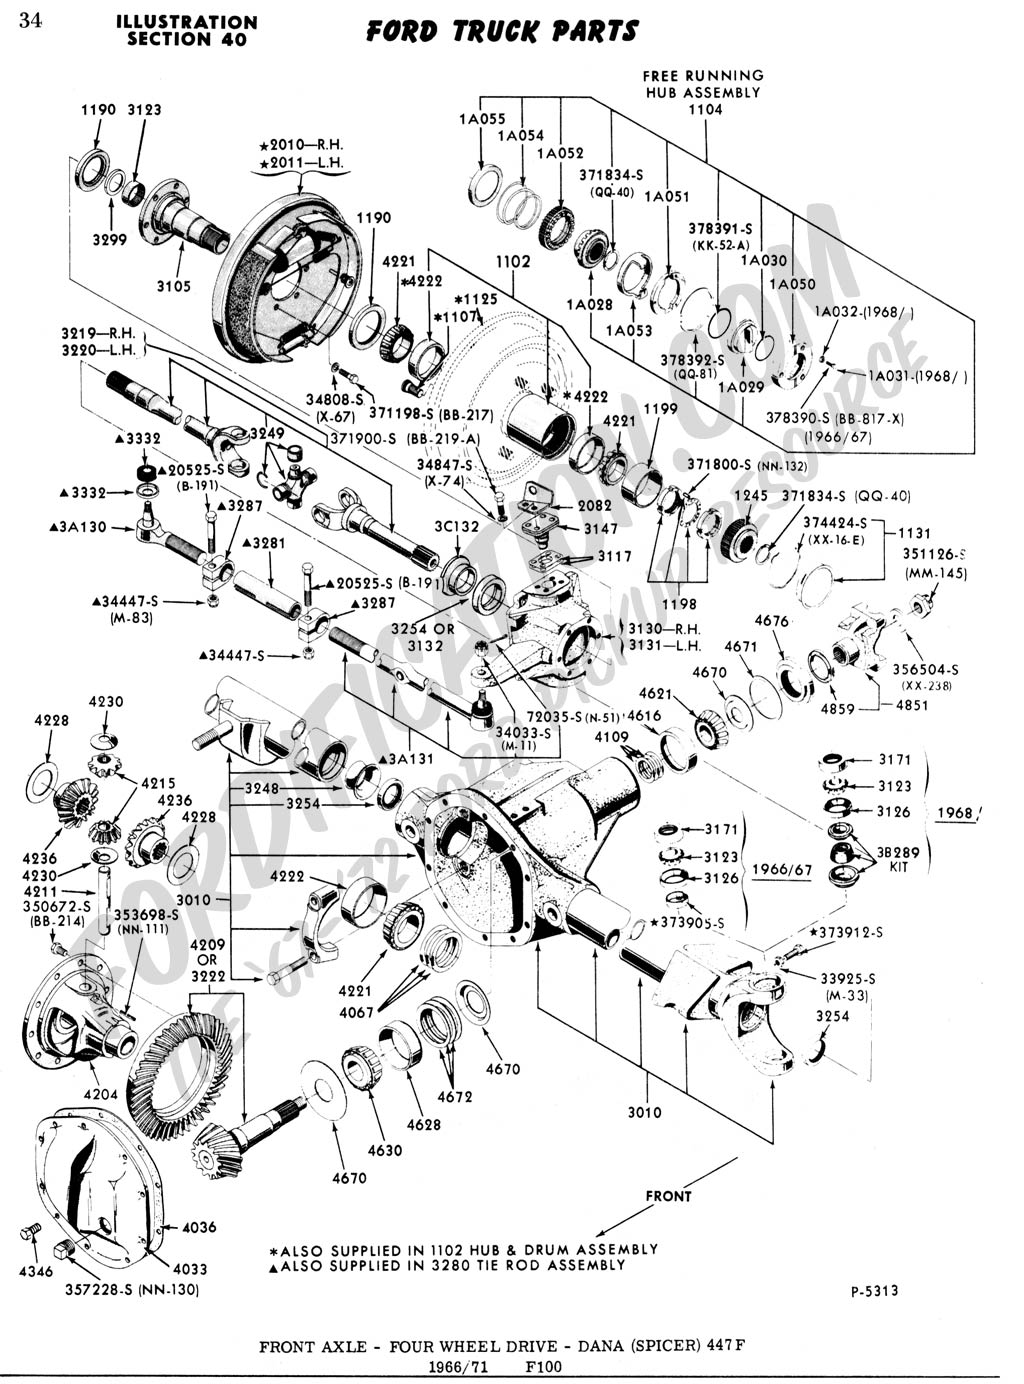 Auto Voltage Regulator Wiring Diagram further 1320799 1986 F150 4 9l Wiring Diagram likewise Distributor Wiring Diagram 350 Hei Chevy Engine furthermore 1338085 Ford Truck Information And Then Some also Front End Parts 150338. on 1984 ford bronco diagram